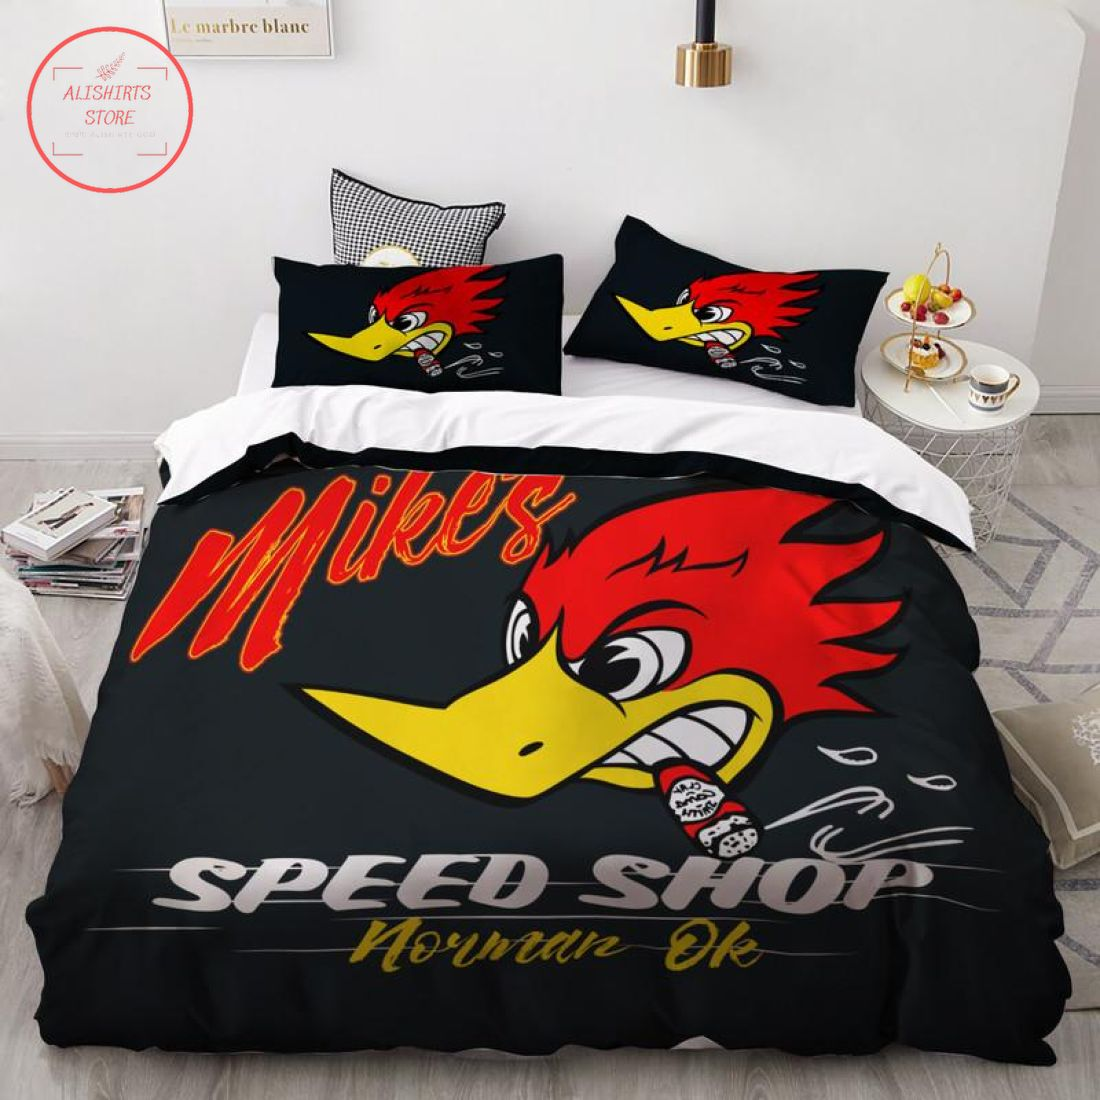 Personalized Speed Shop Hot Rod Bedding Set